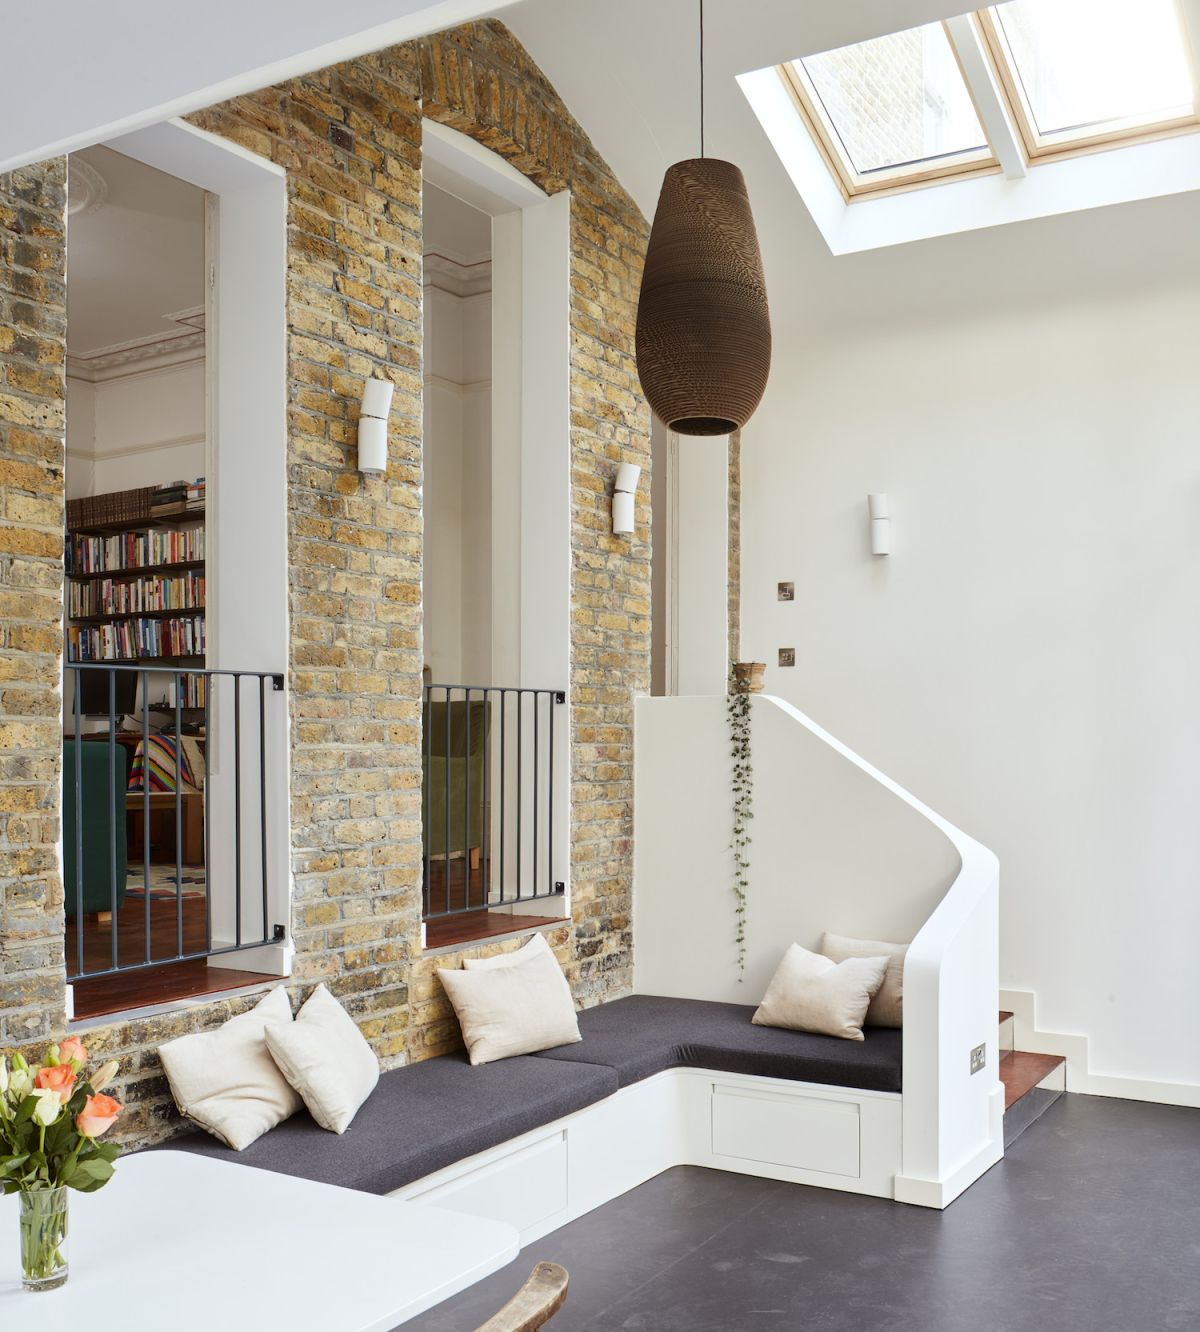 Take a look at this stunning rear extension